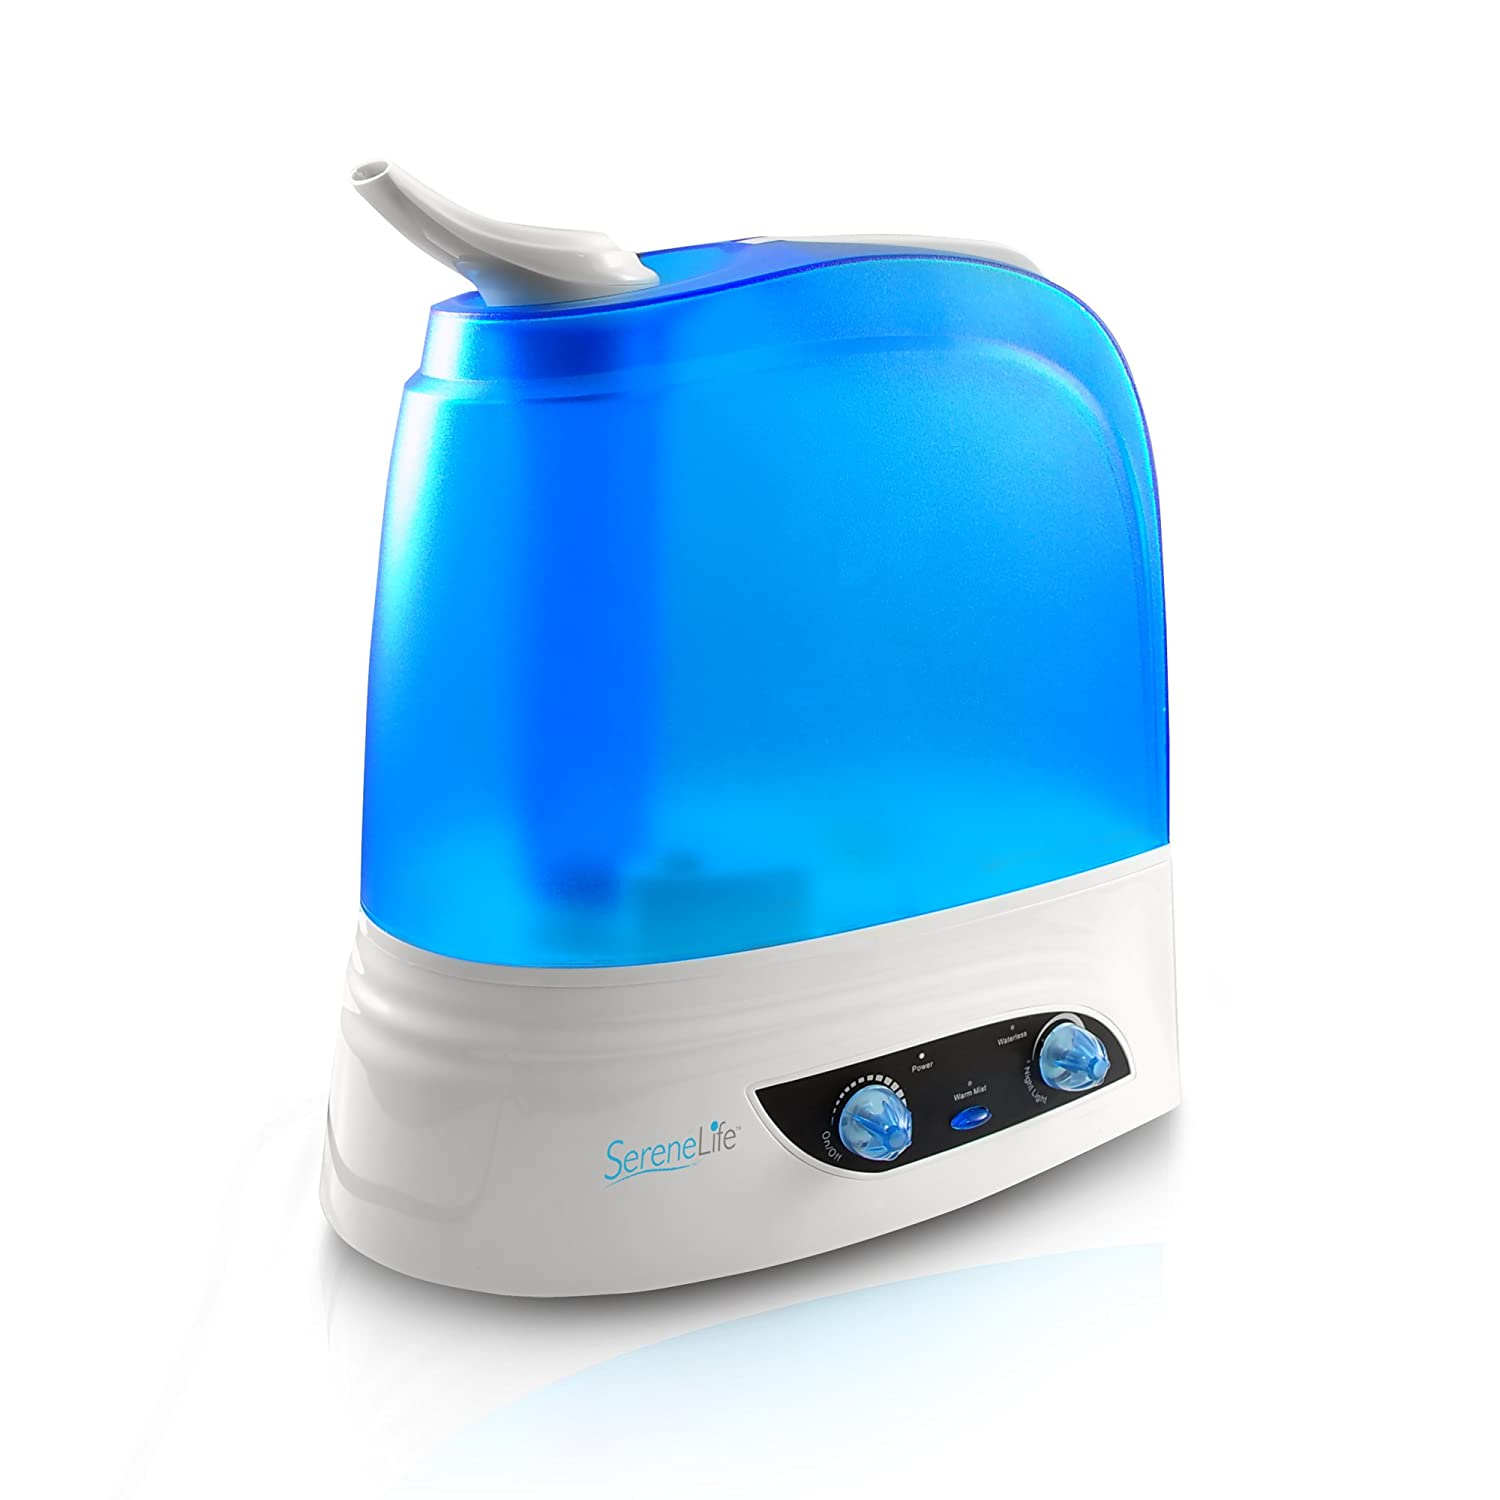 Night Light Kid and Baby Room Nursery Office Small Compact Humidifier for Bedroom Table Top Home BPA Free InvisiPure Wave Humidifier and Bedside High Output Cool Mist Vaporizer